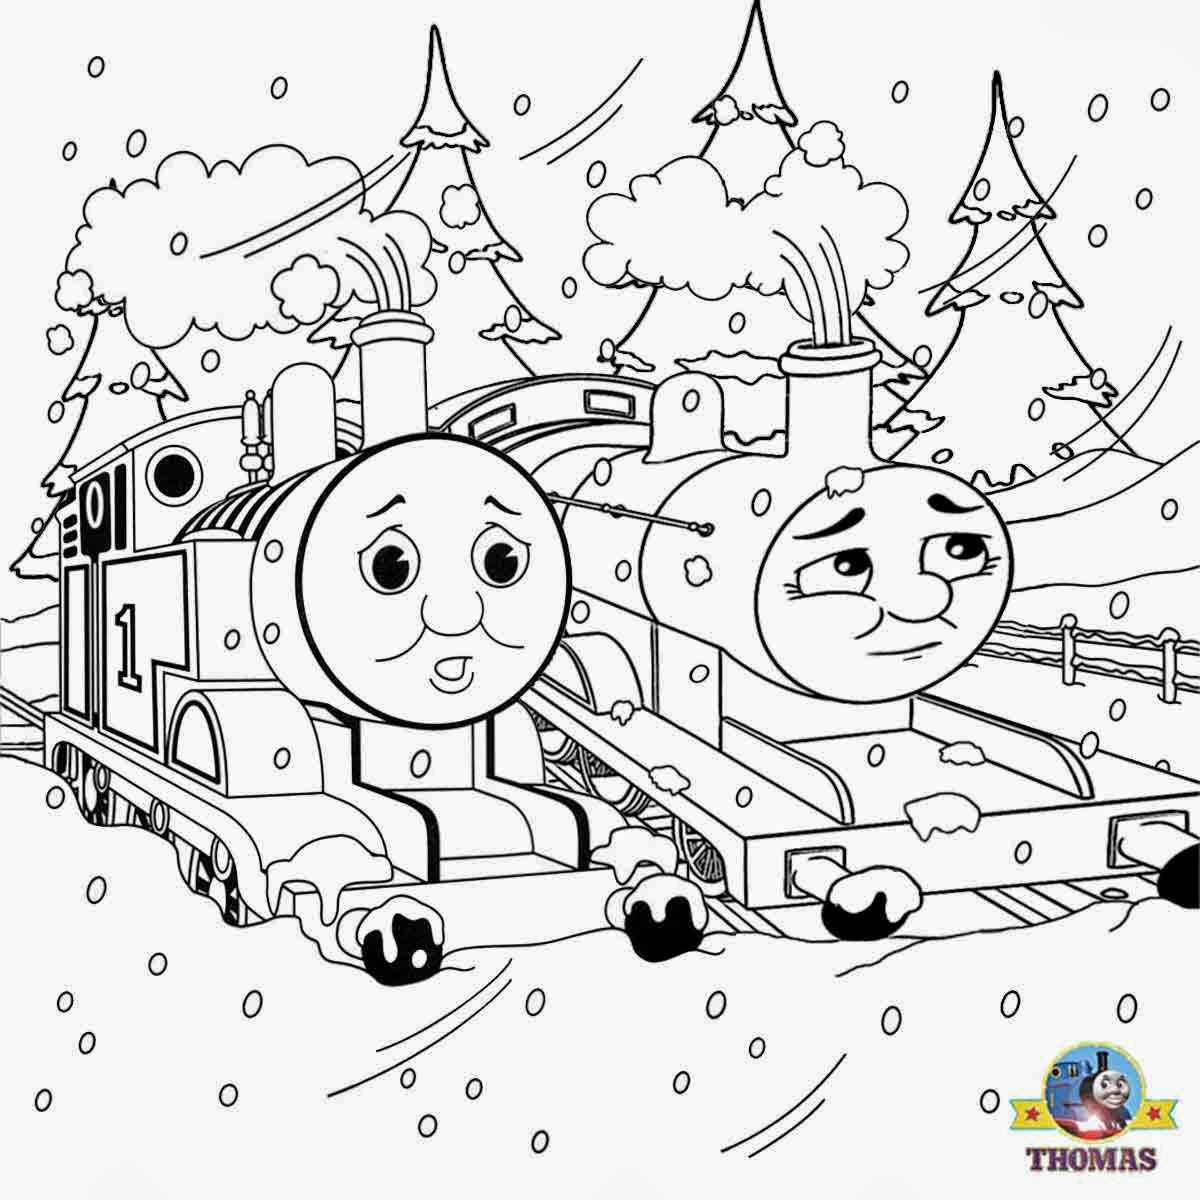 Thomas the train coloring sheets printable - Thomas The Train Coloring Pages Printable For Free Coloring